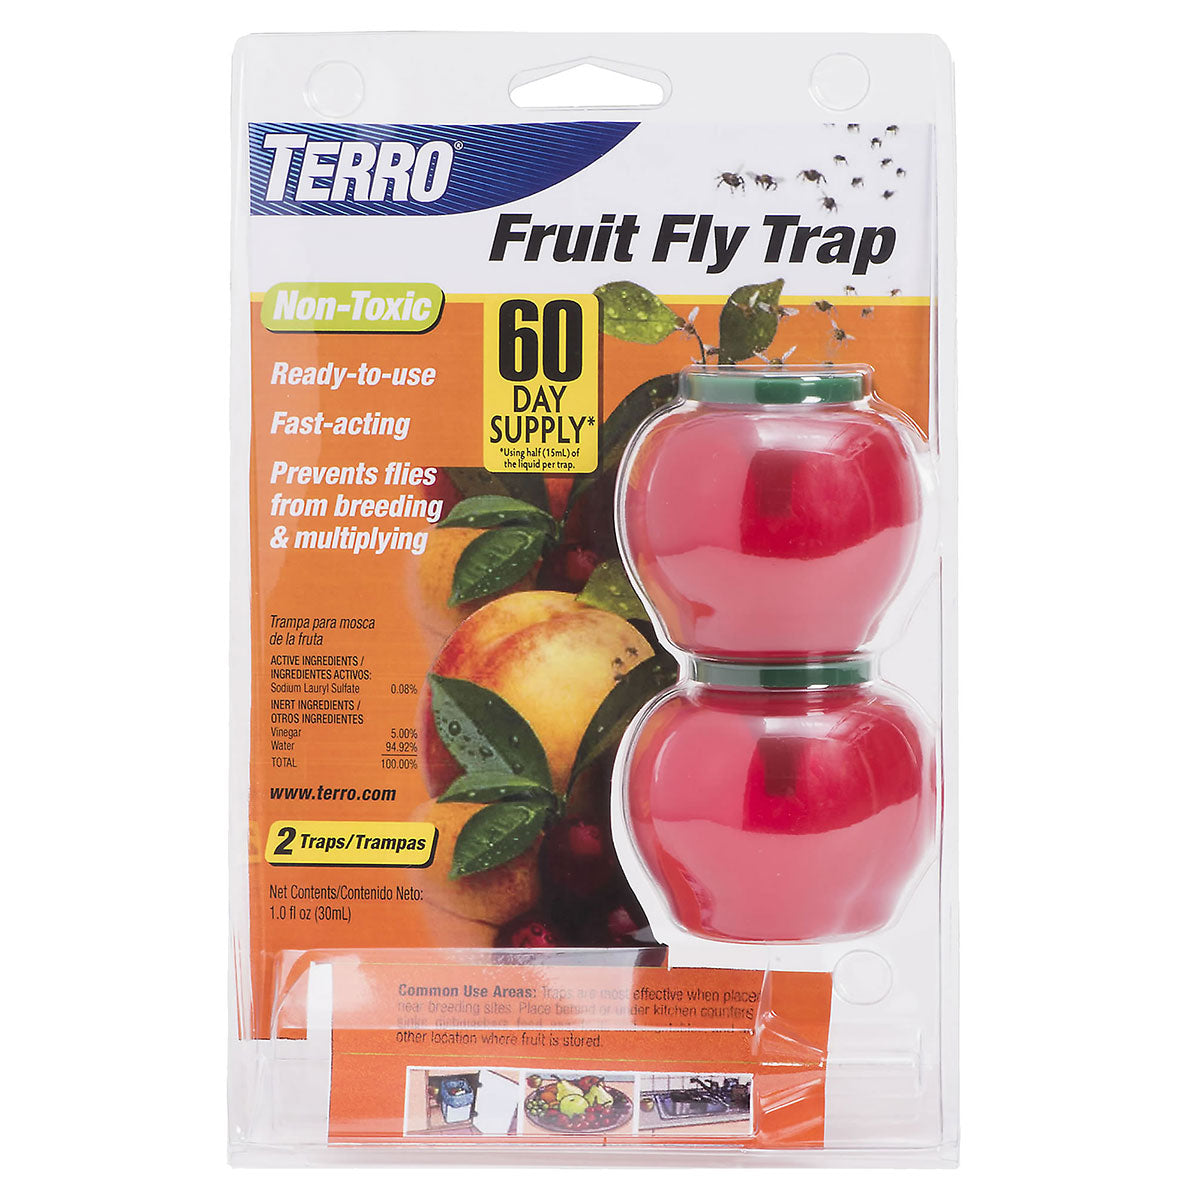 Terro S27-25006 Fruit Fly Trap 2 Pack